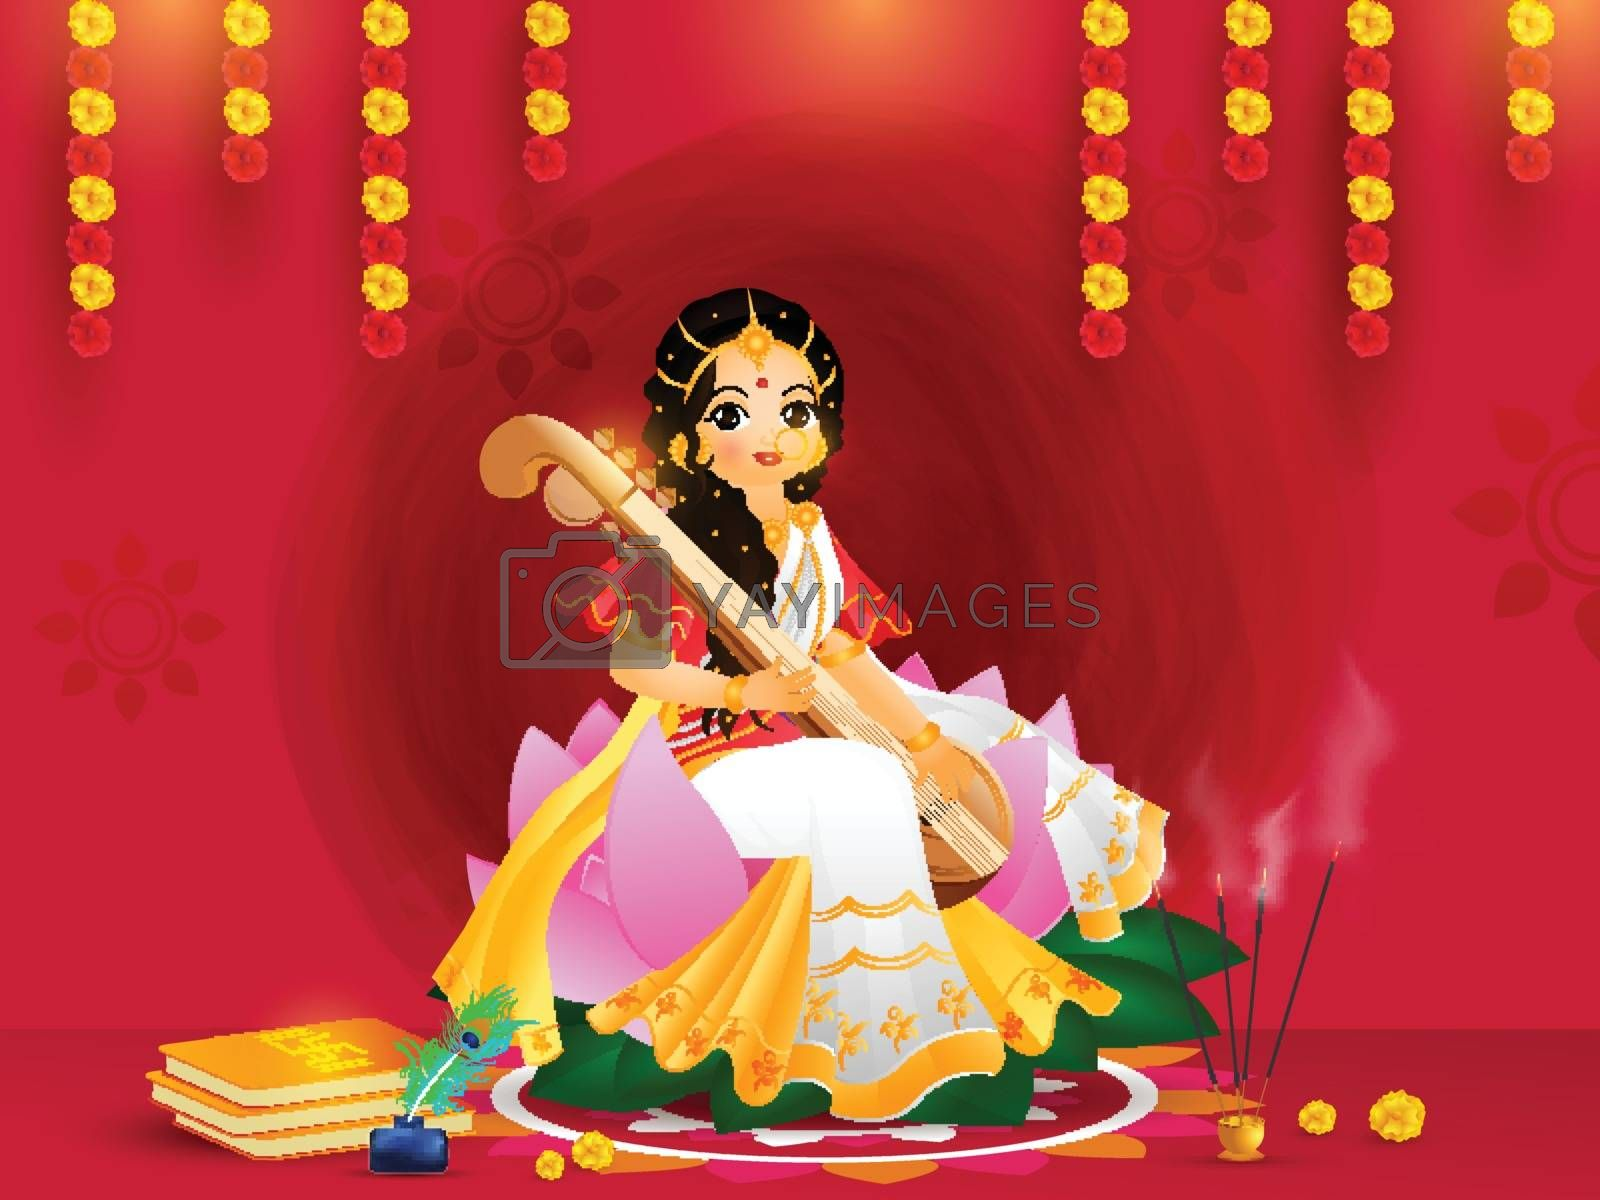 Beautiful greeting card design with goddess saraswati character in sitting pose on the occasion of Vasant Panchami.